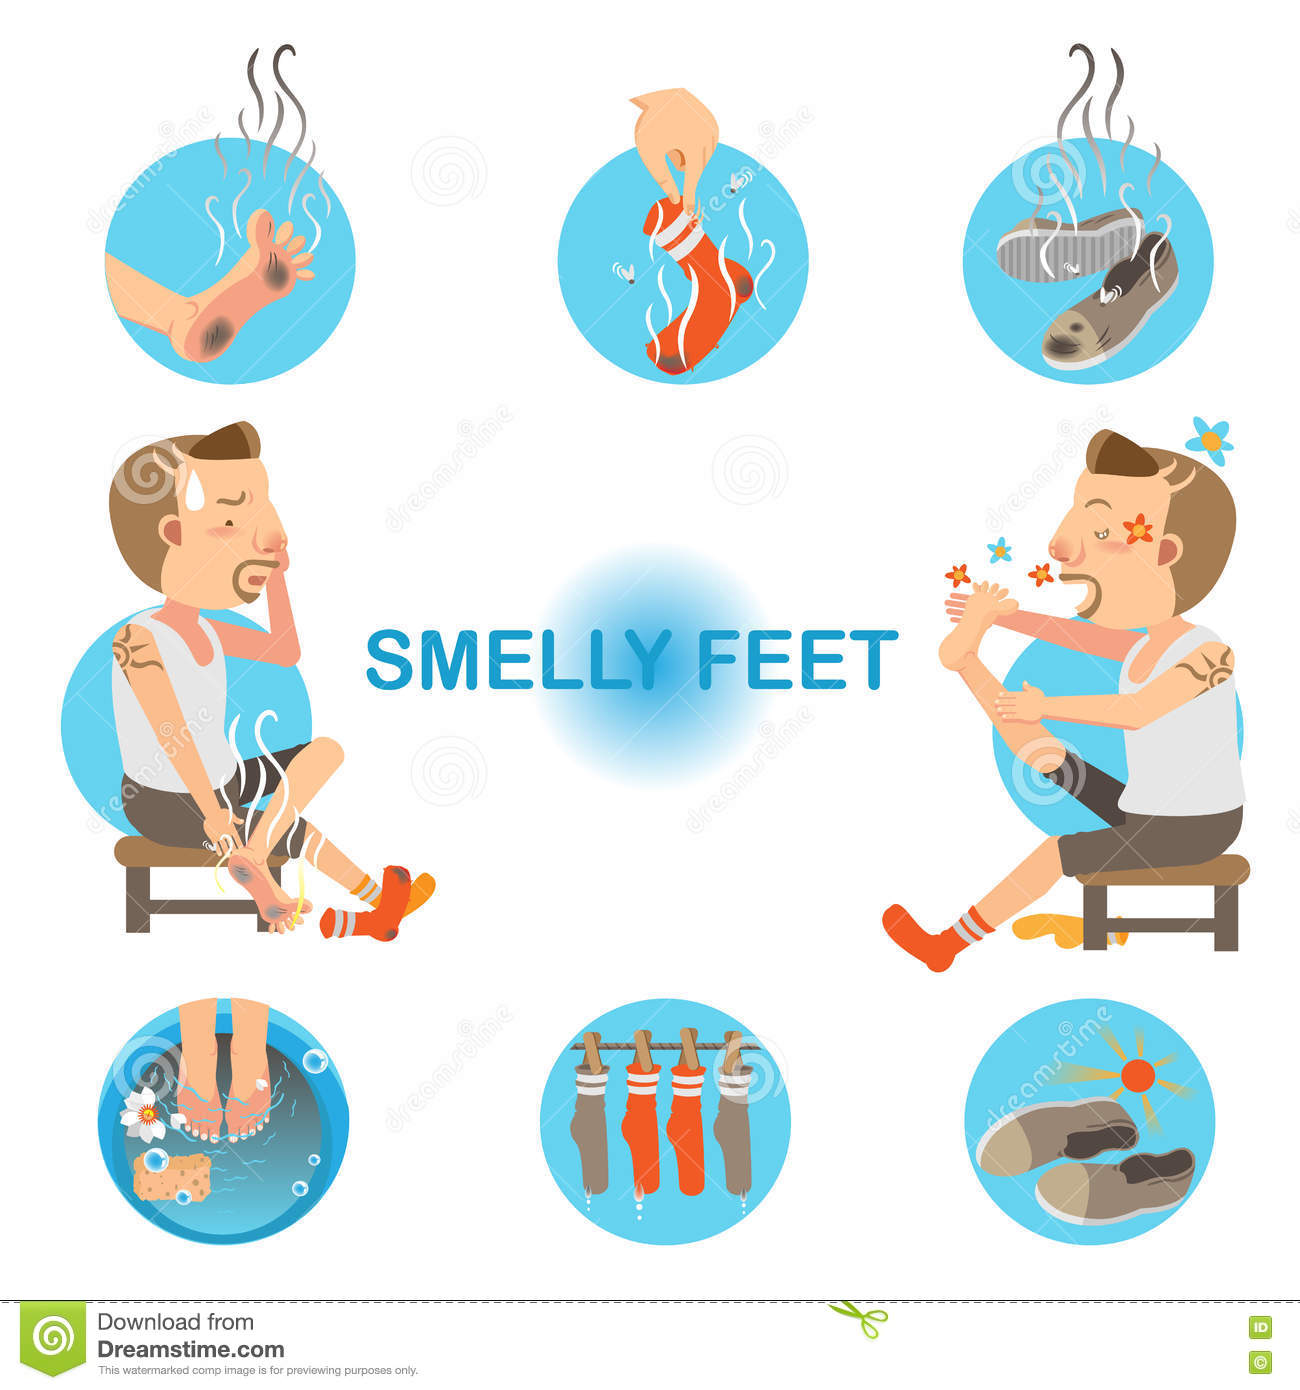 how to stop smelly shoes from smelling